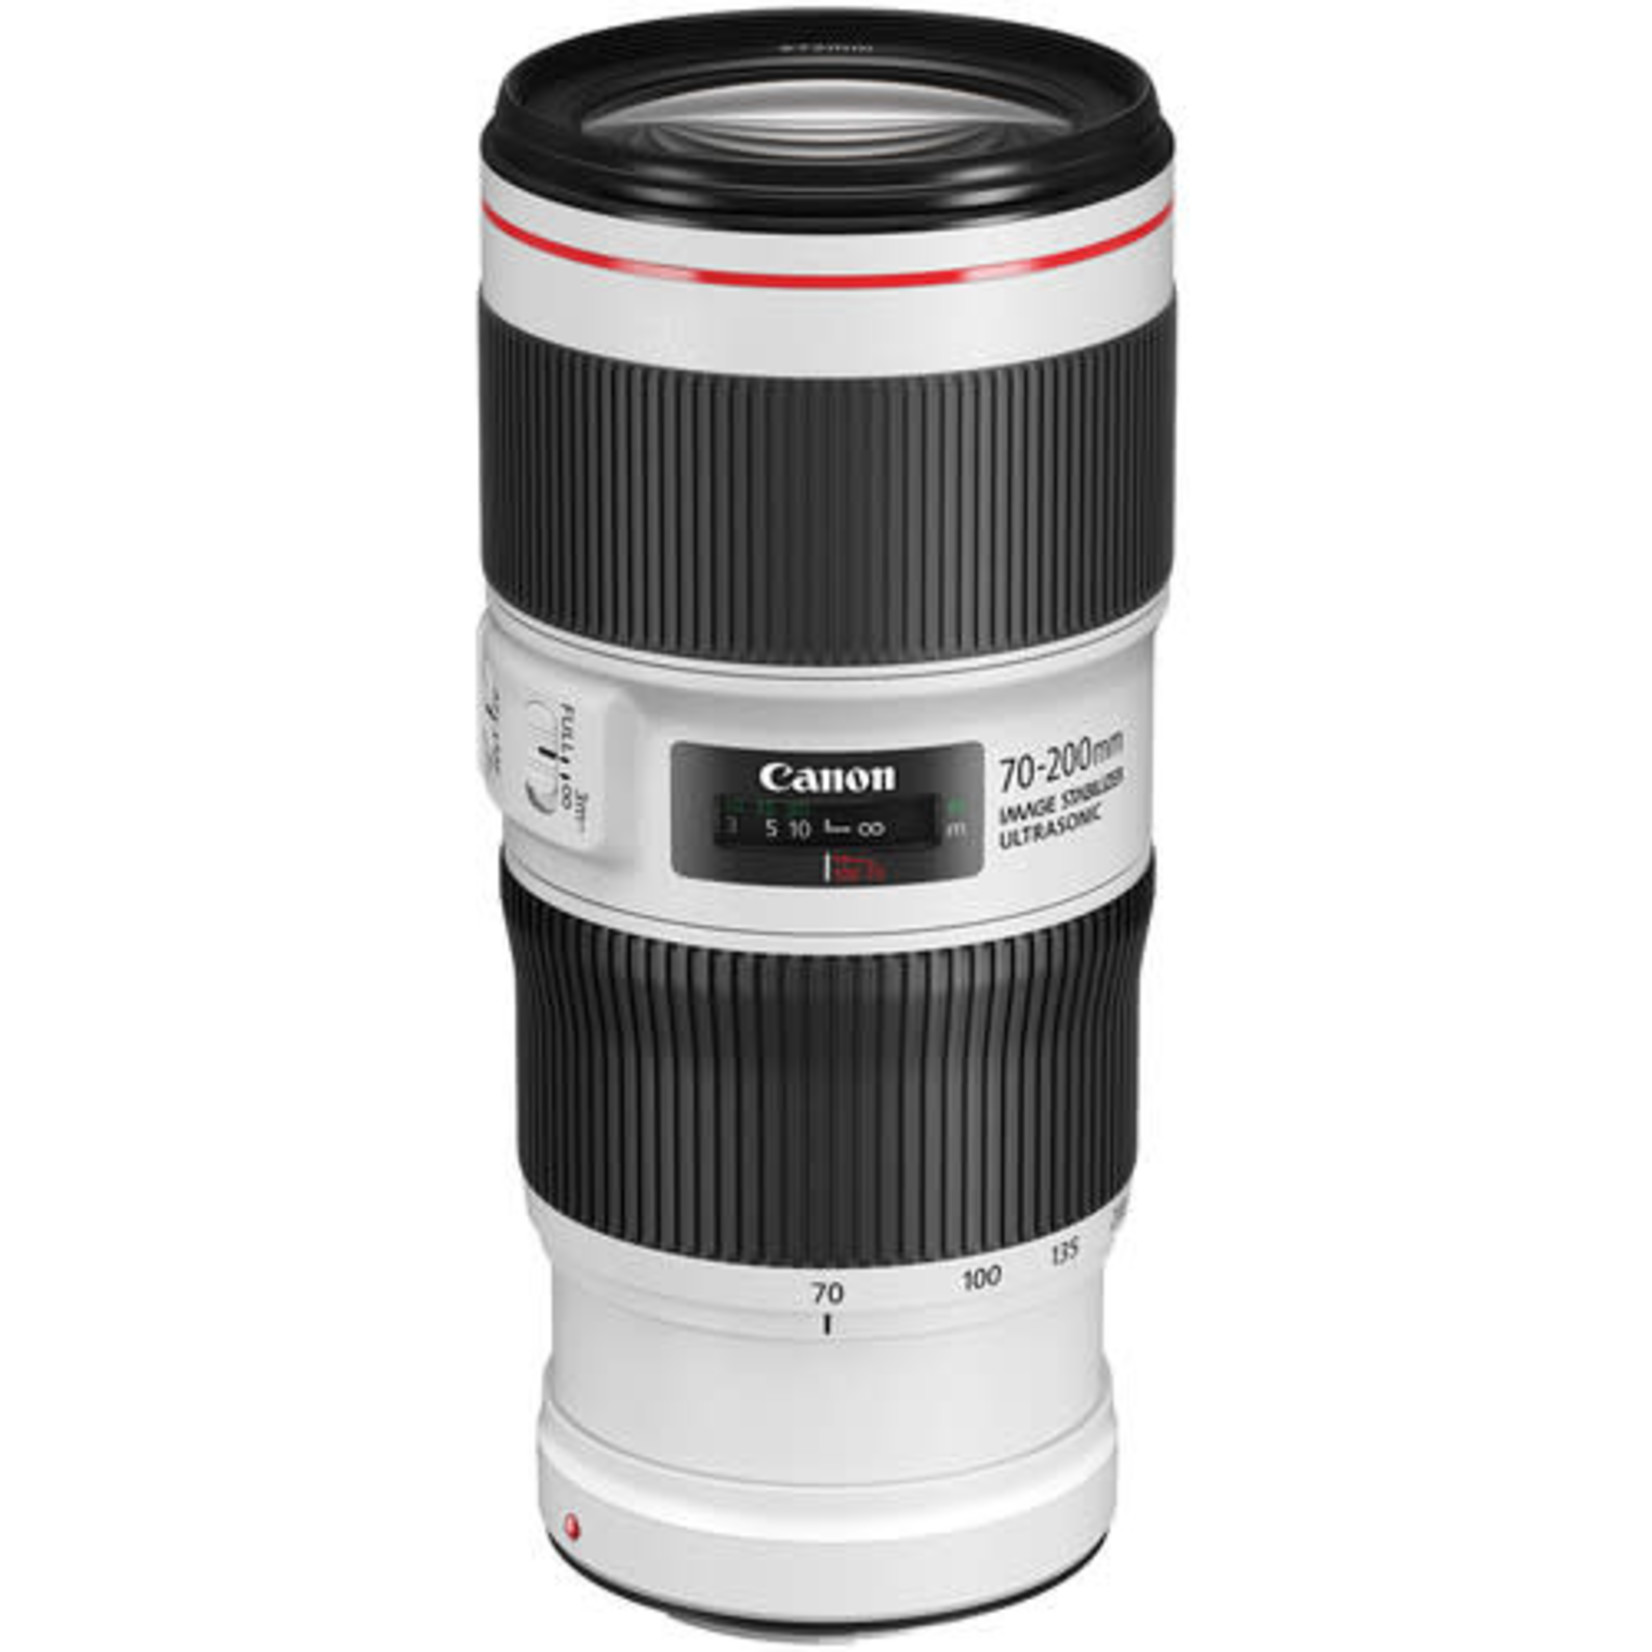 Canon Canon EF 70-200mm f/4L IS II USM Lens